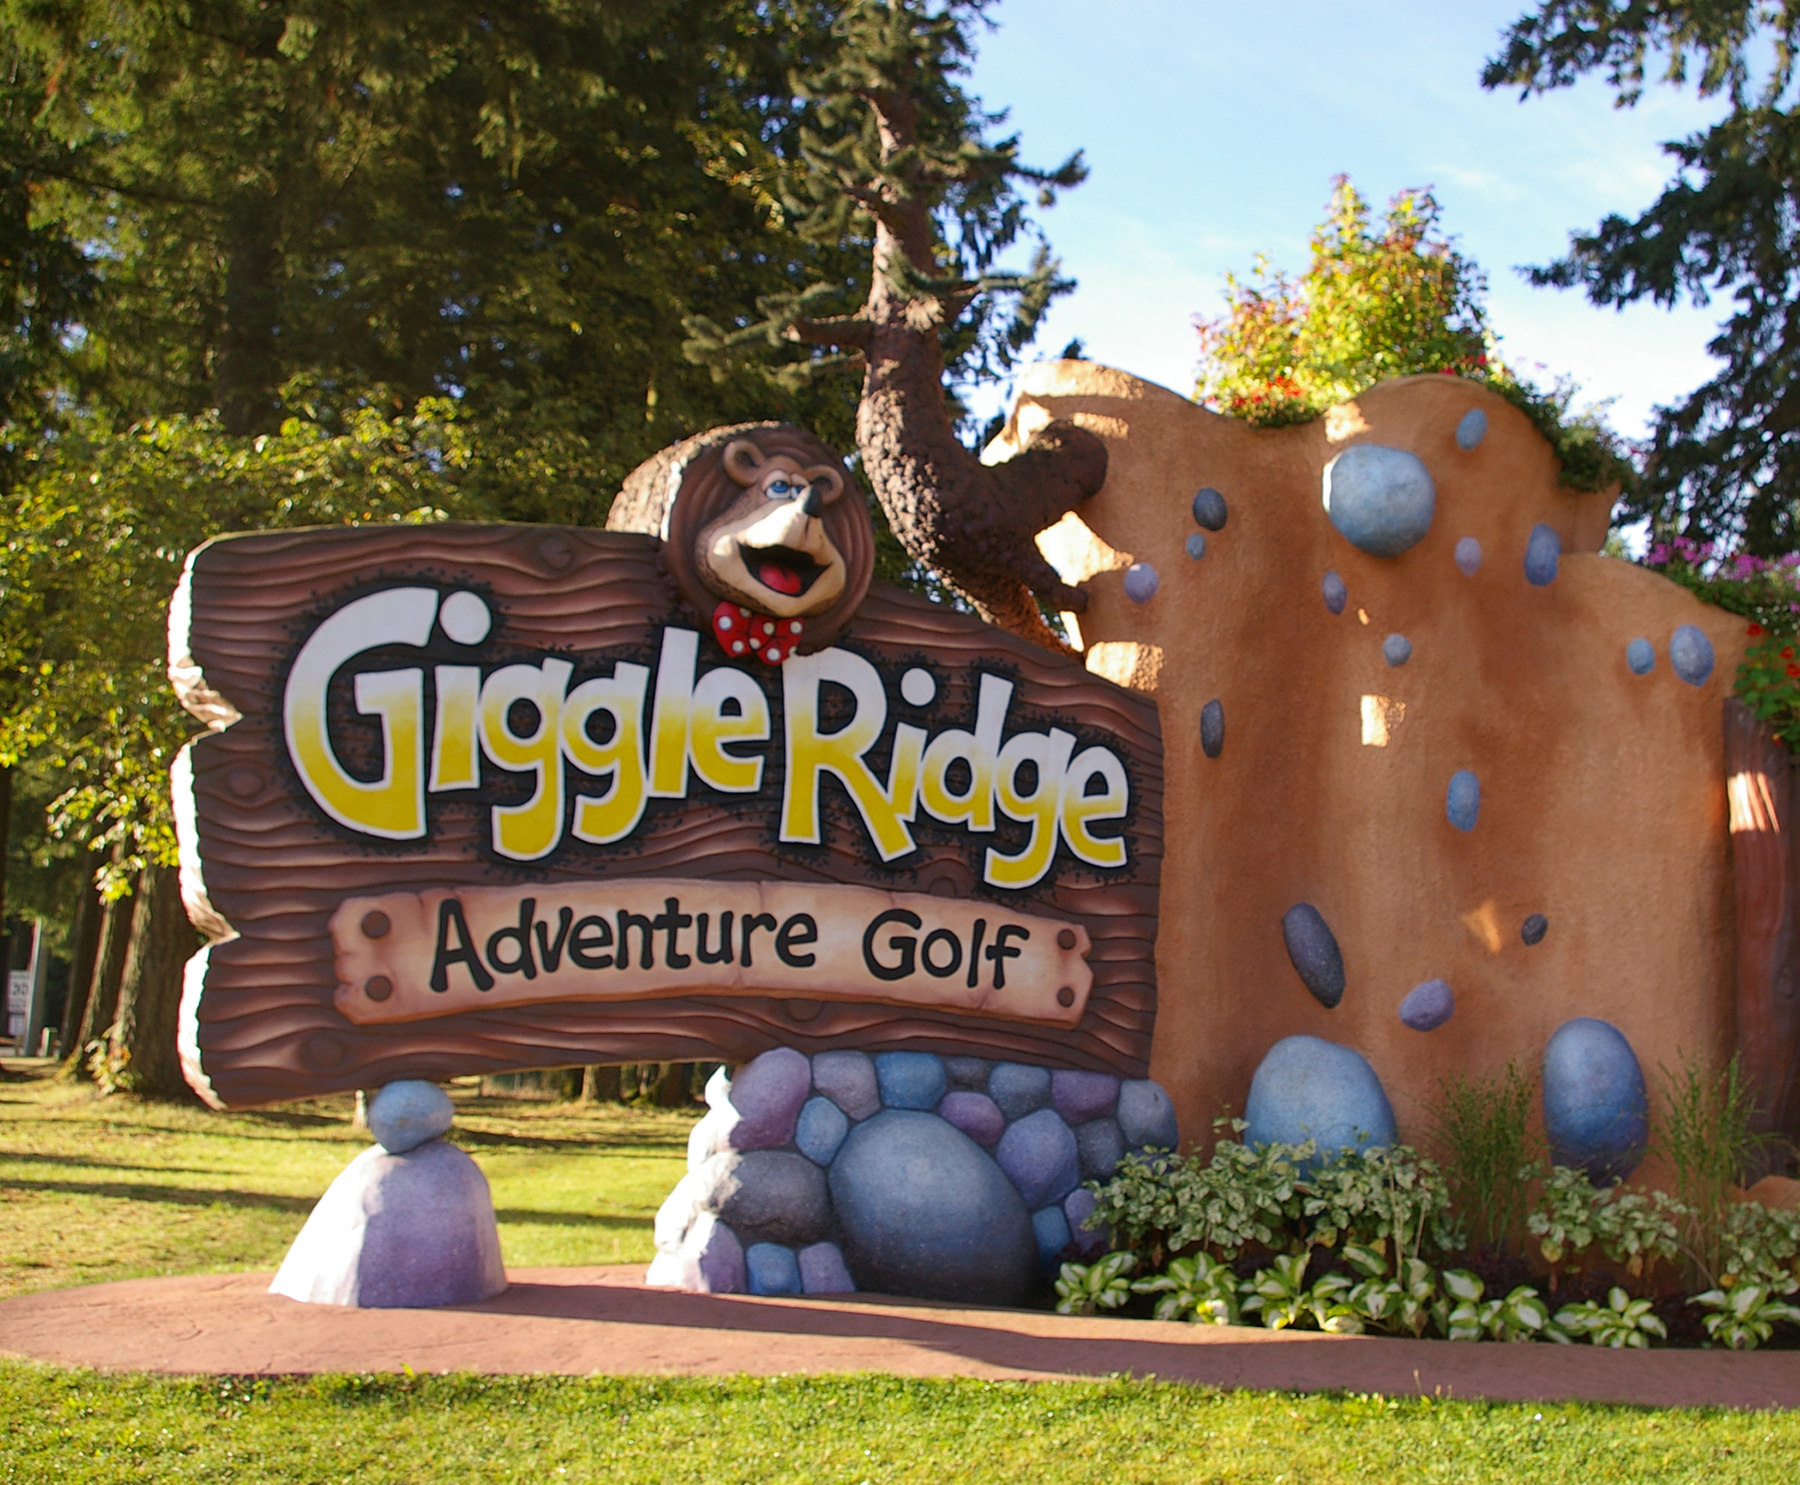 Giggle Ridge Main Sign